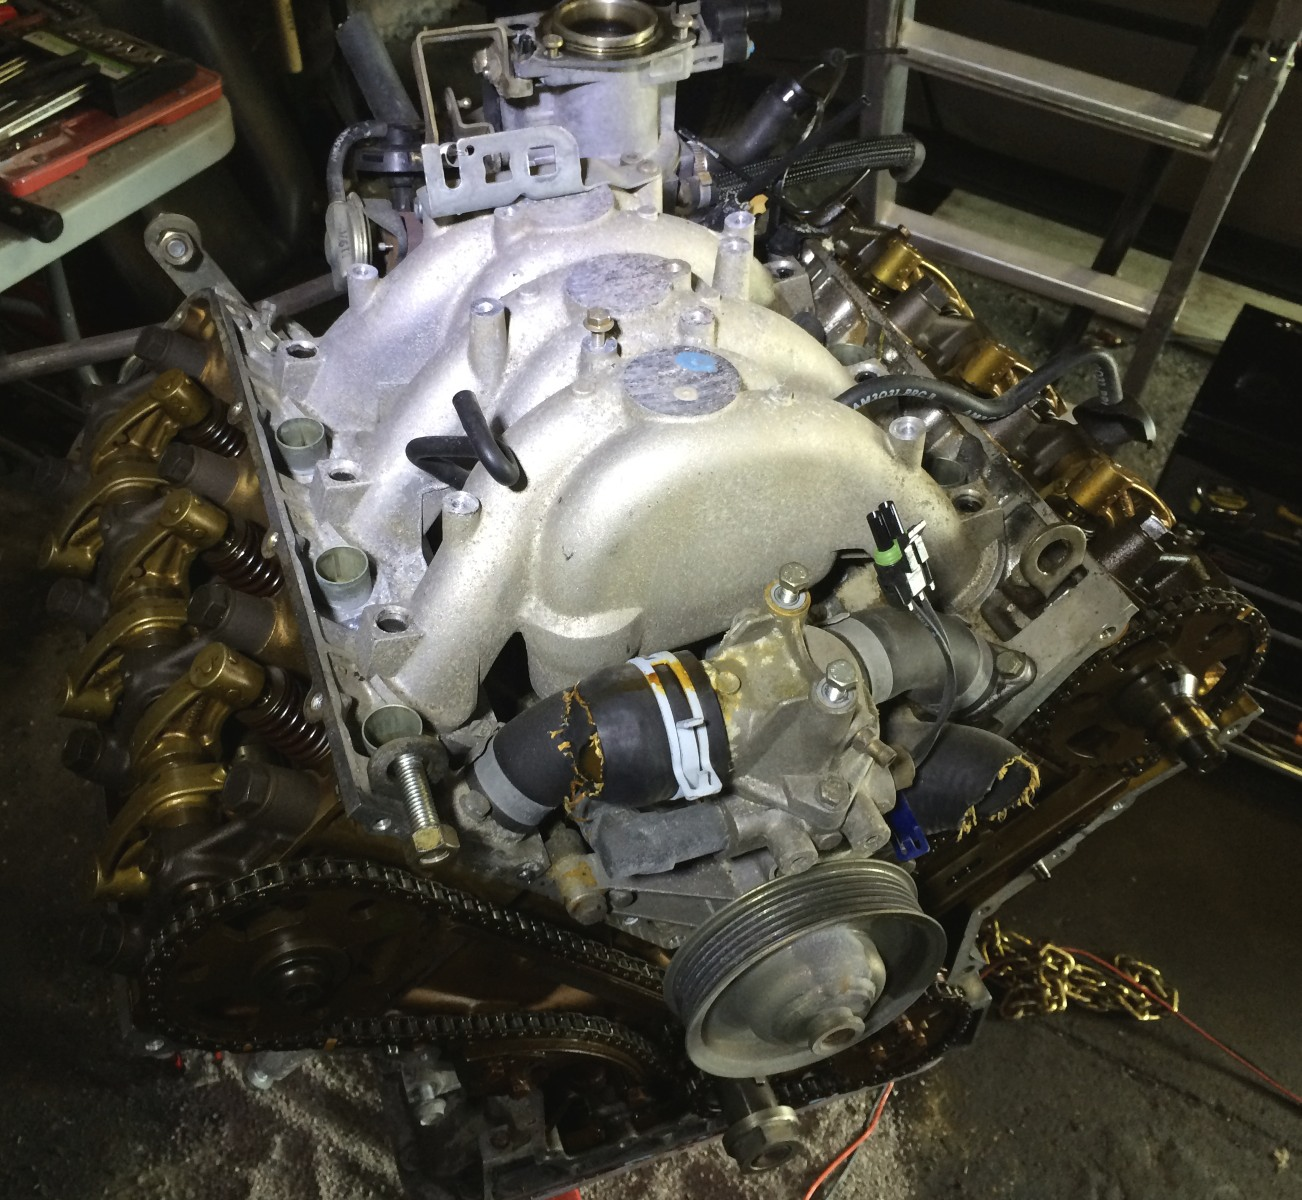 The intake manifold with the rails removed.